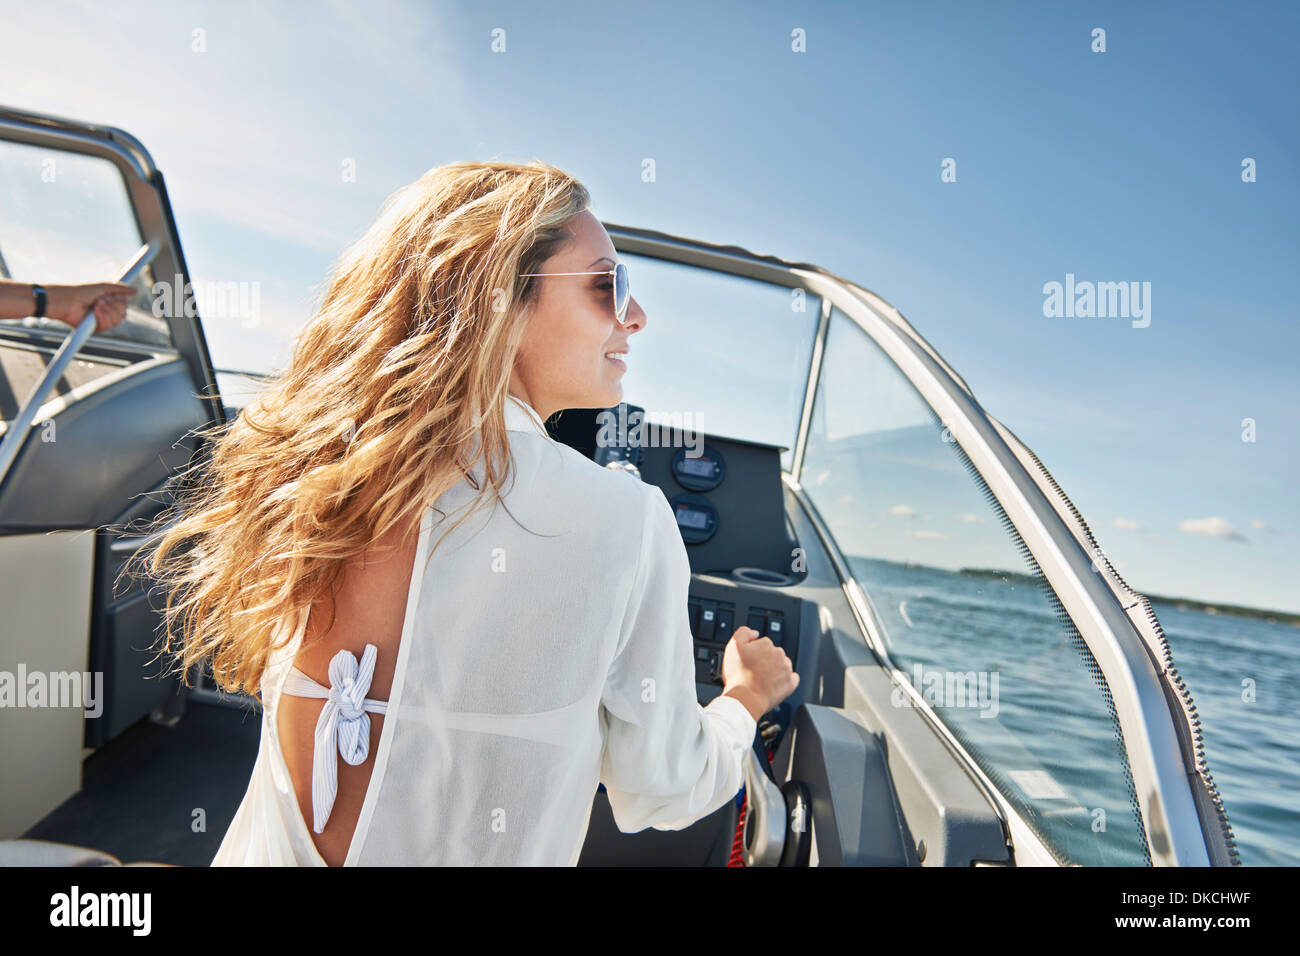 Young woman steering boat, Gavle, Sweden - Stock Image